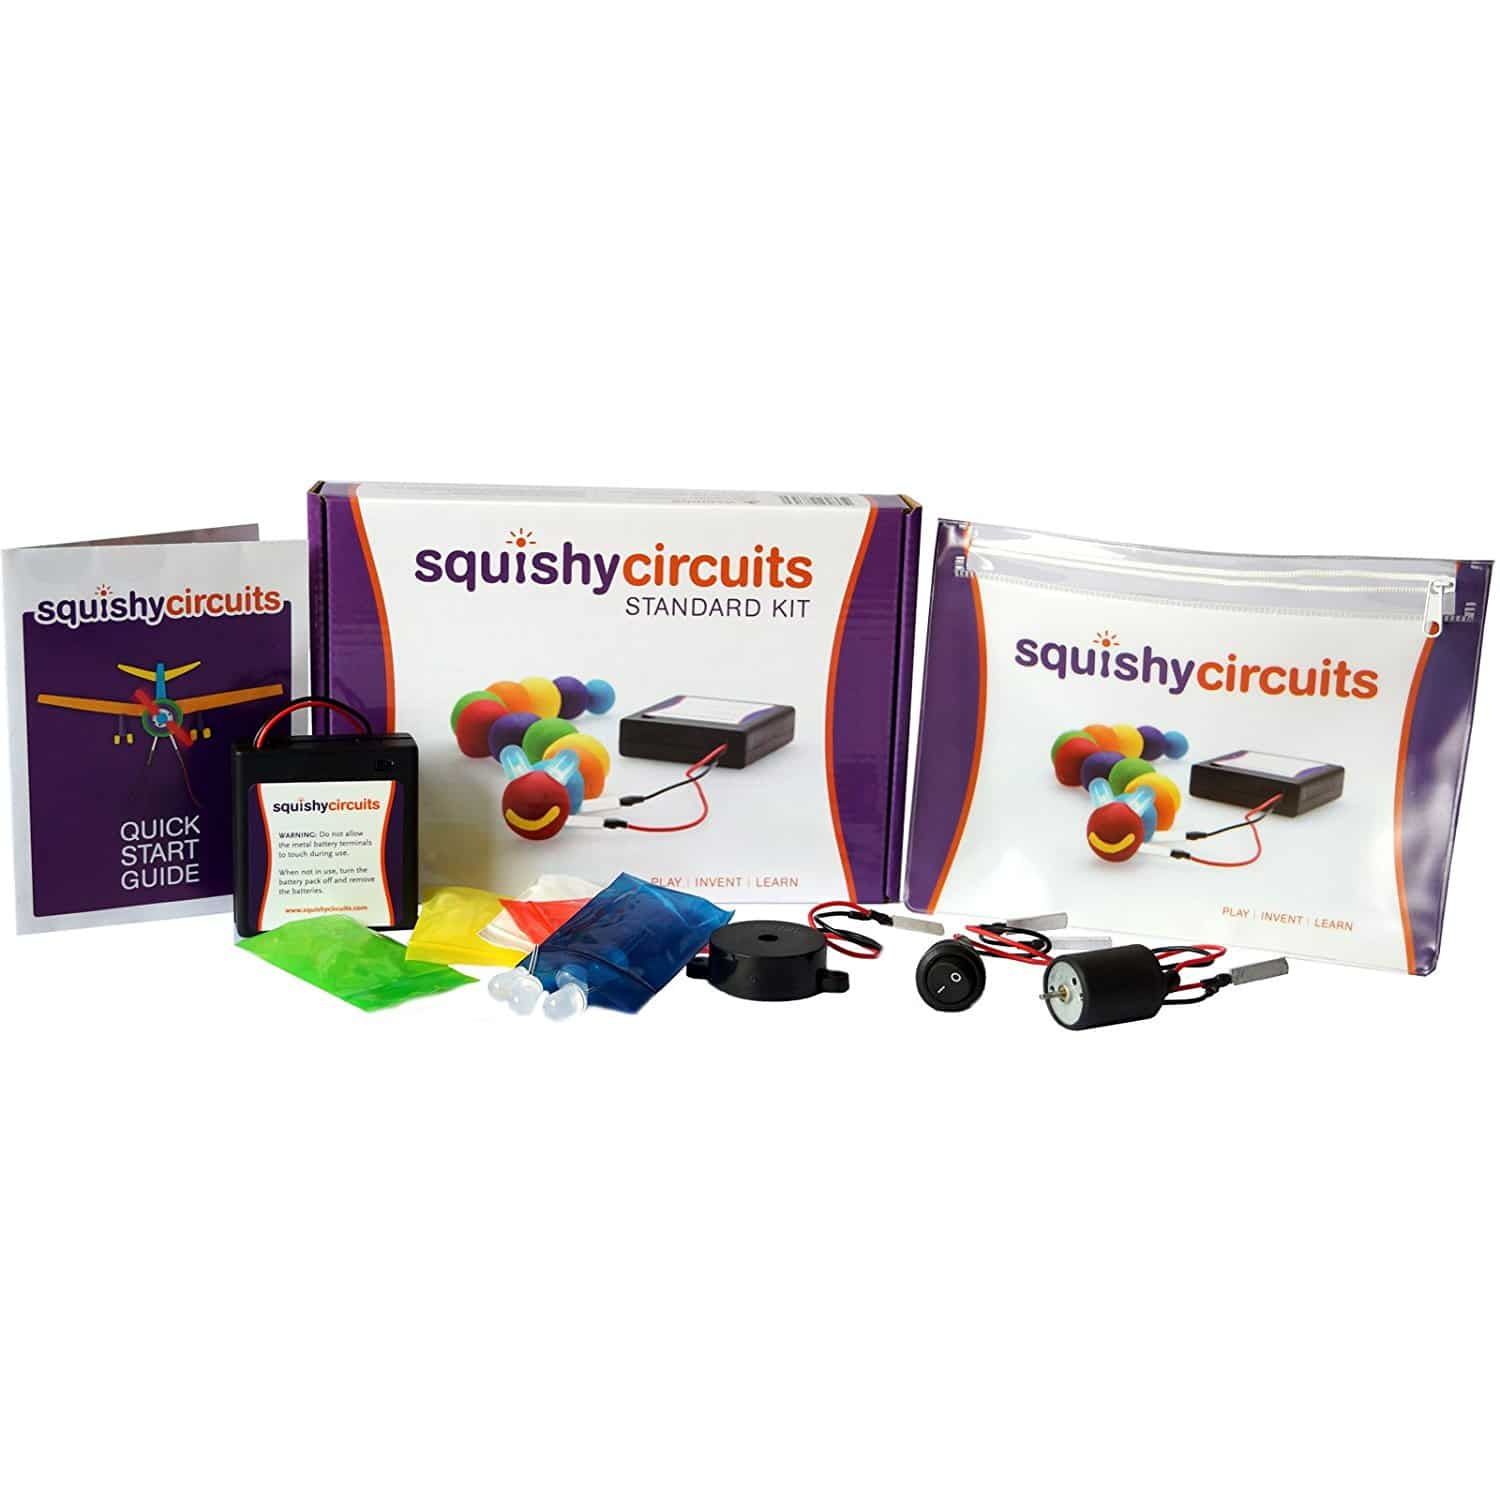 Wondering how to use Squishy Circuits? All the tips and tricks you need in one place to maximize the educational value of this wonderful product!